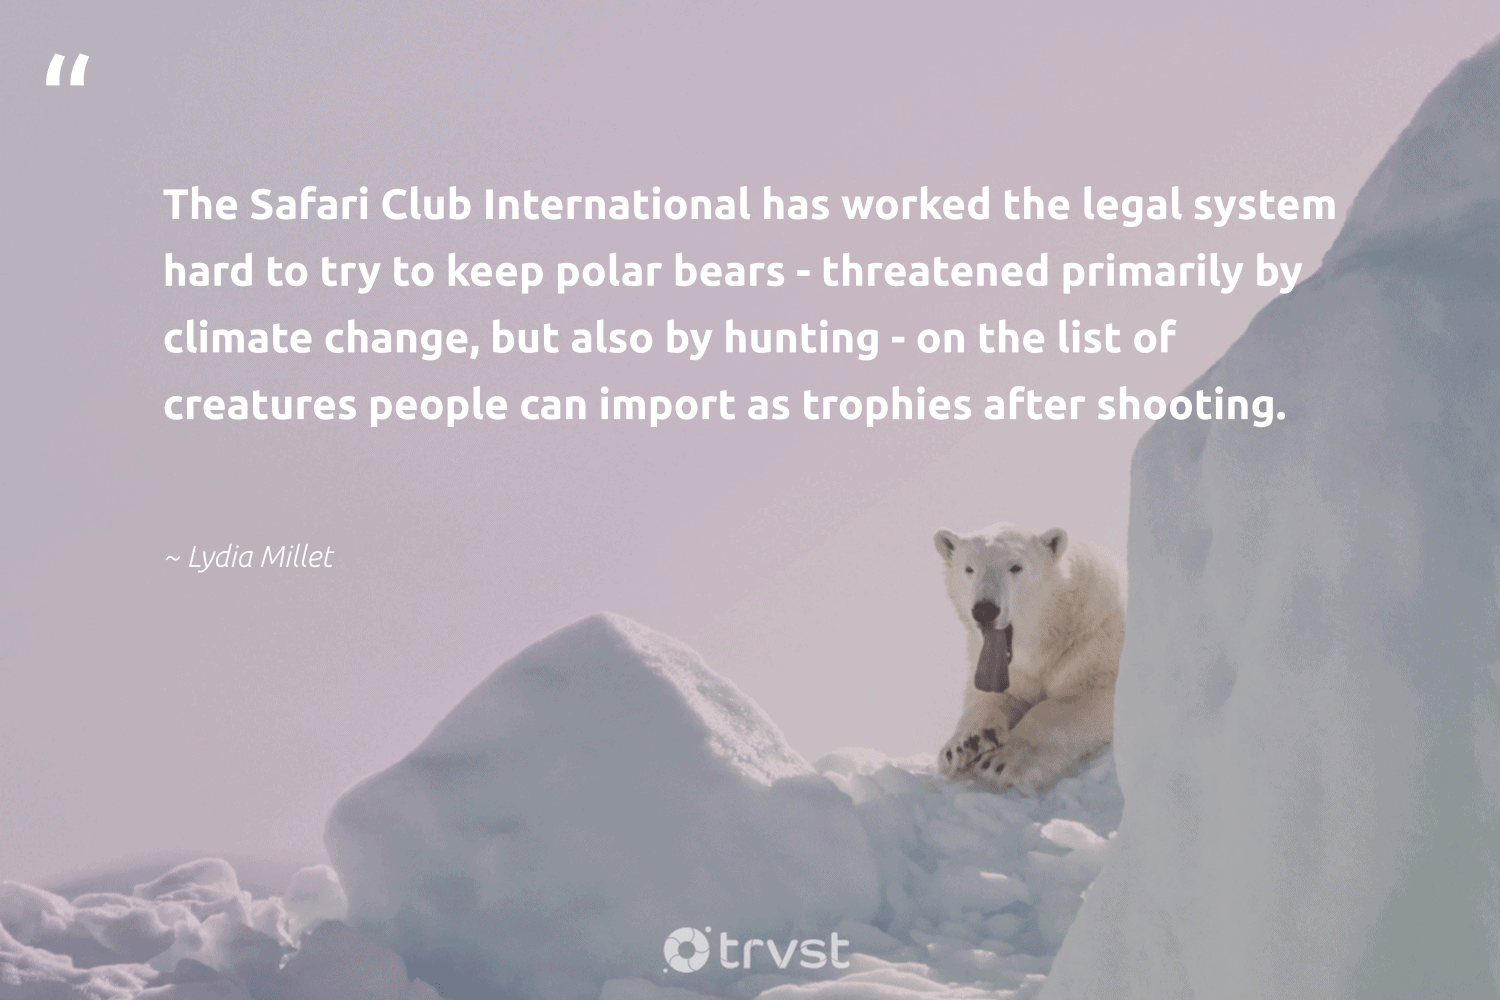 """""""The Safari Club International has worked the legal system hard to try to keep polar bears - threatened primarily by climate change, but also by hunting - on the list of creatures people can import as trophies after shooting.""""  - Lydia Millet #trvst #quotes #climatechange #safari #climate #bears #co2 #climatechangeisreal #conservation #sustainablefutures #takeaction #carbonemissions"""